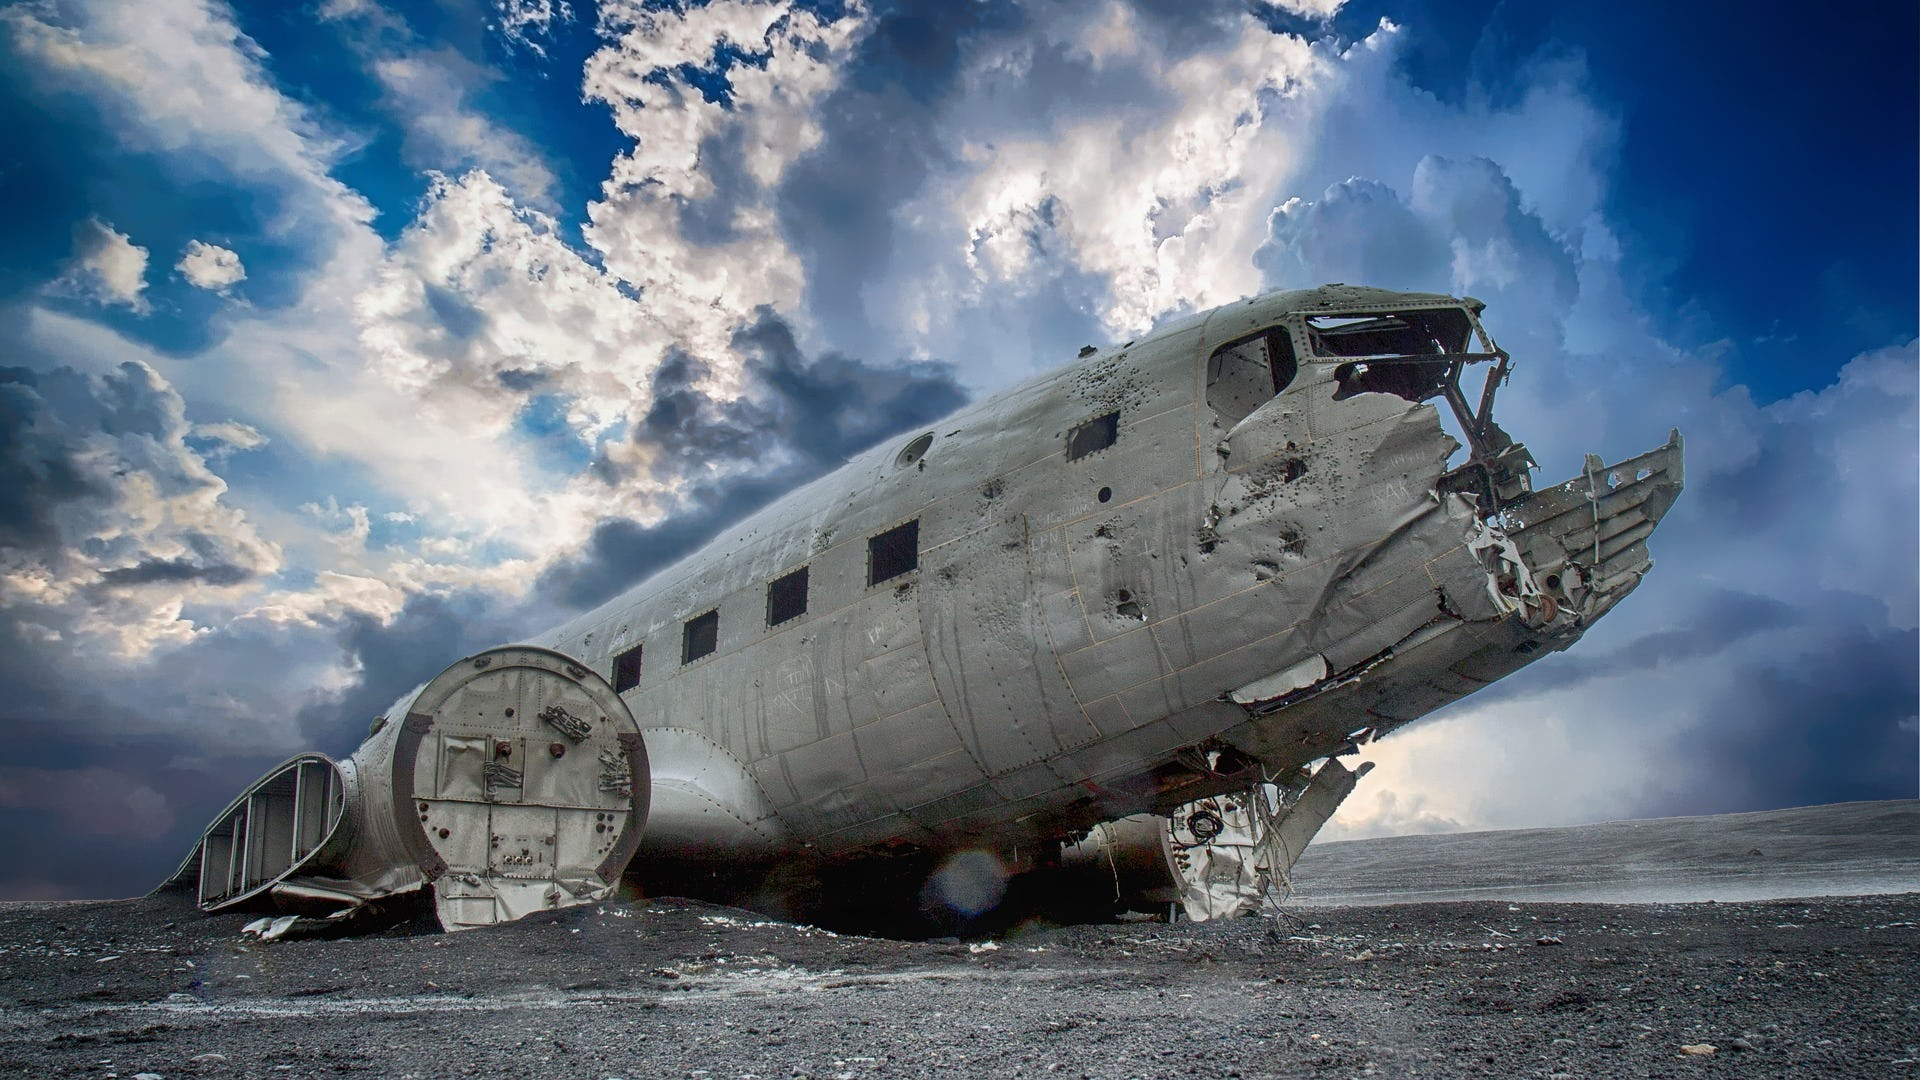 This DC-3 plane wreck on Iceland's South Coast is surrounded by pitch black sands, making it look surreal and post-acopalyptic